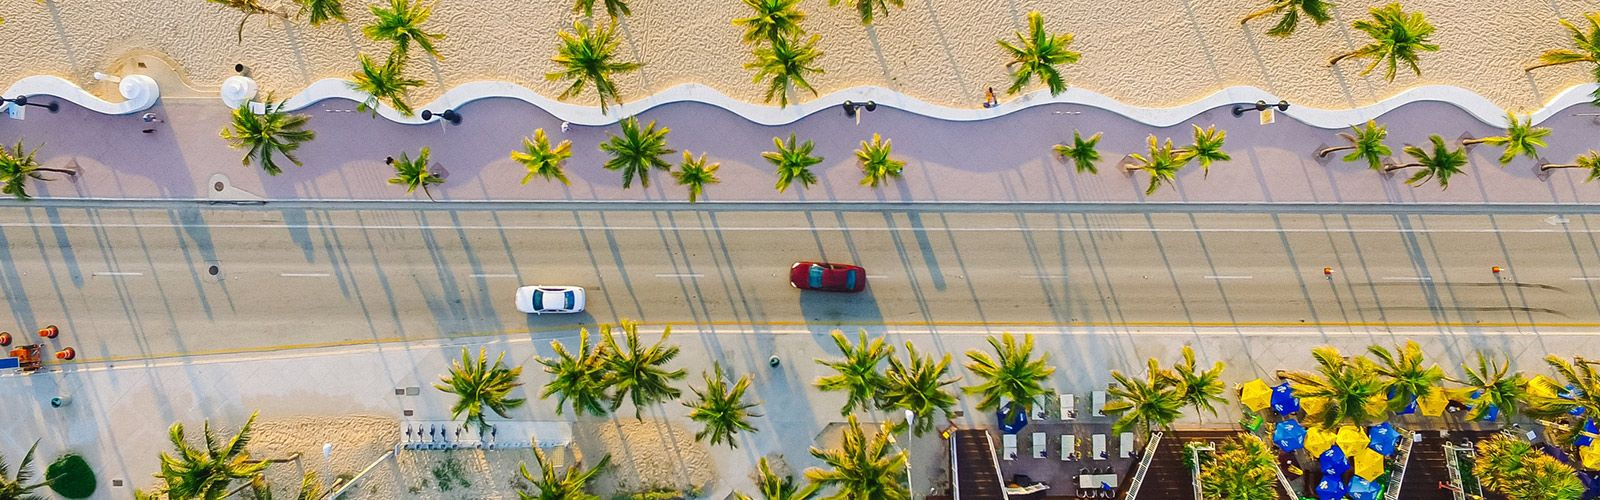 Getaround's peer-to-peer carsharing cools down Miami traffic